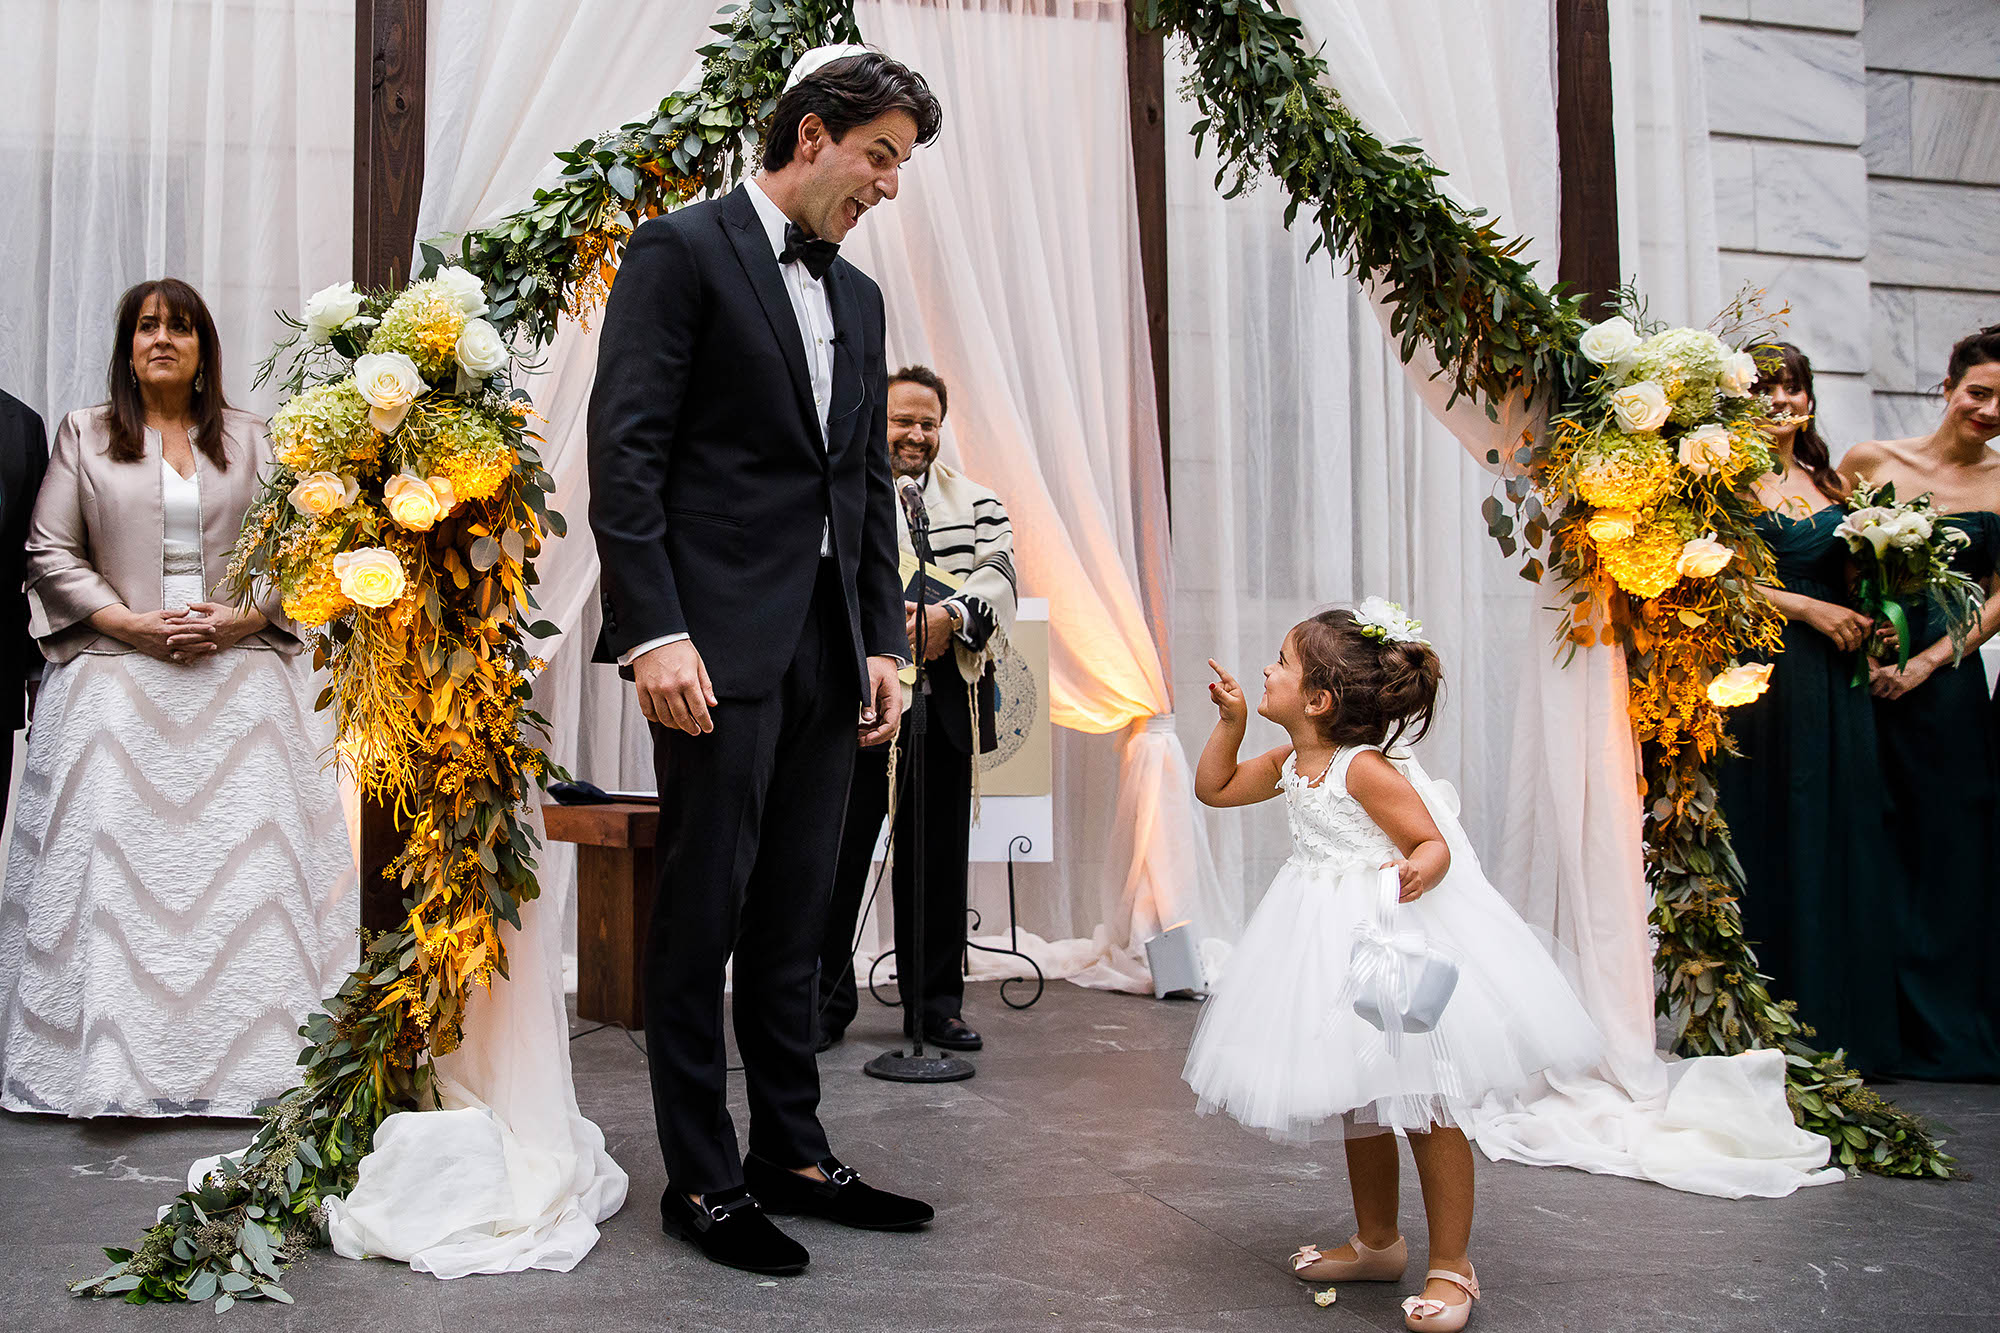 Flower girl scolds the groom after her walk down the aisle during this wedding at the Cleveland Museum of Art.